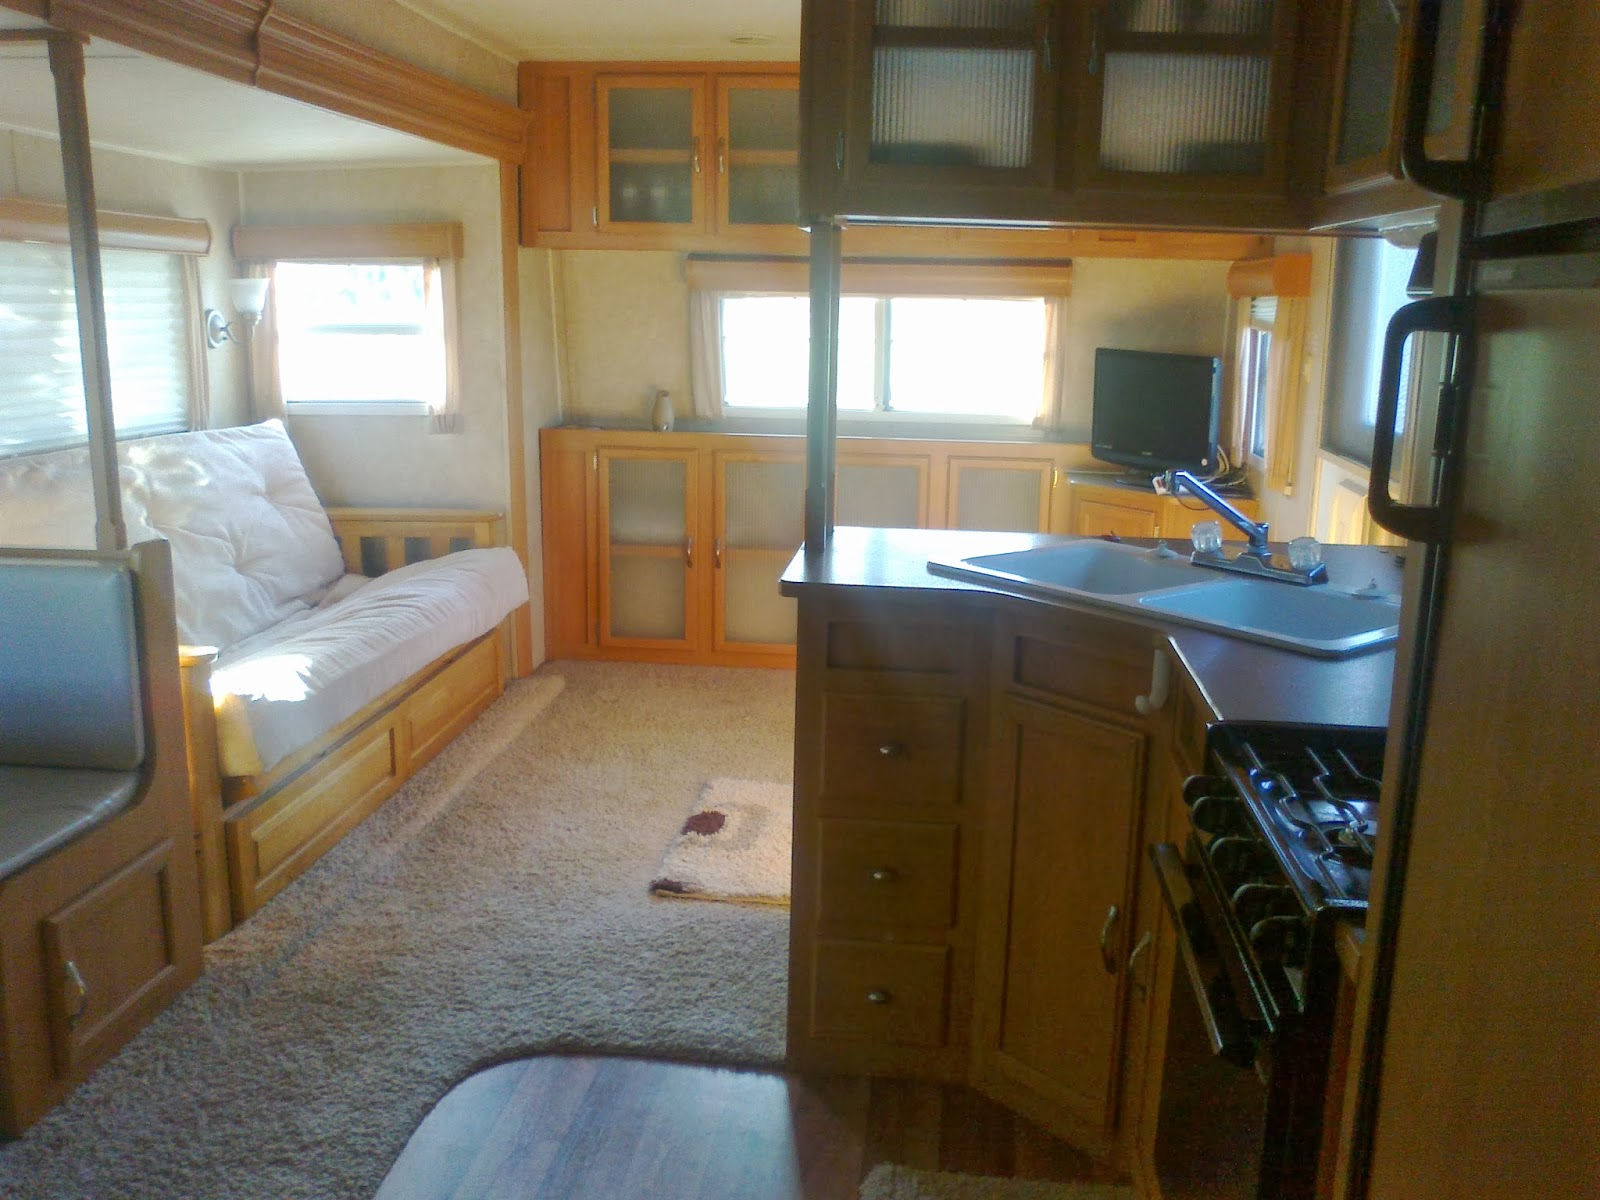 spain luxury american travel trailer recreation by design sold